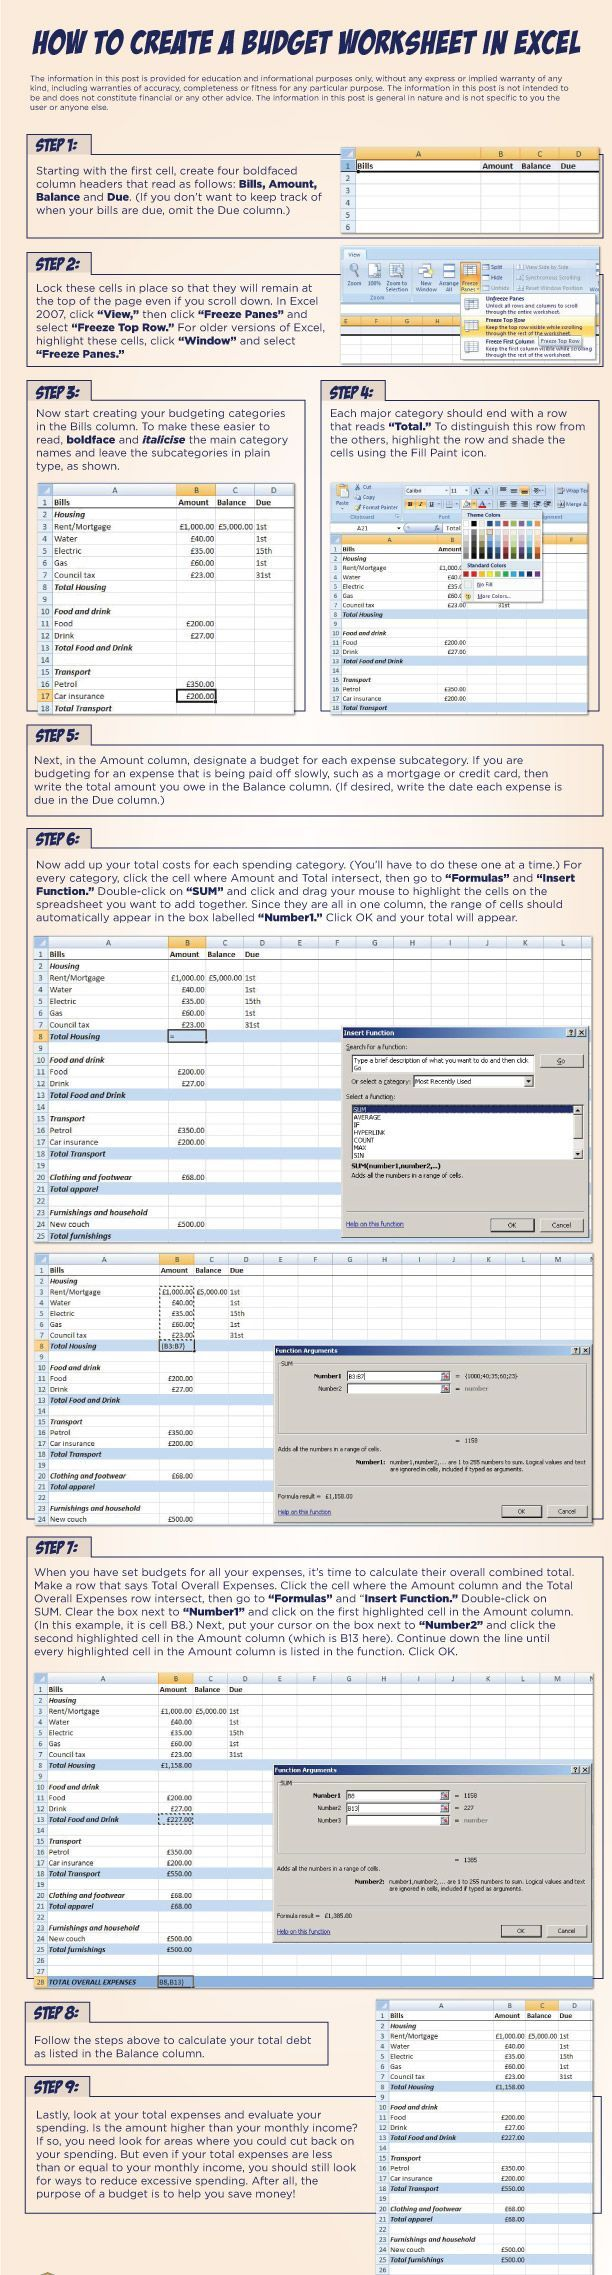 Learn how to create a budget worksheet in Excel step by step.